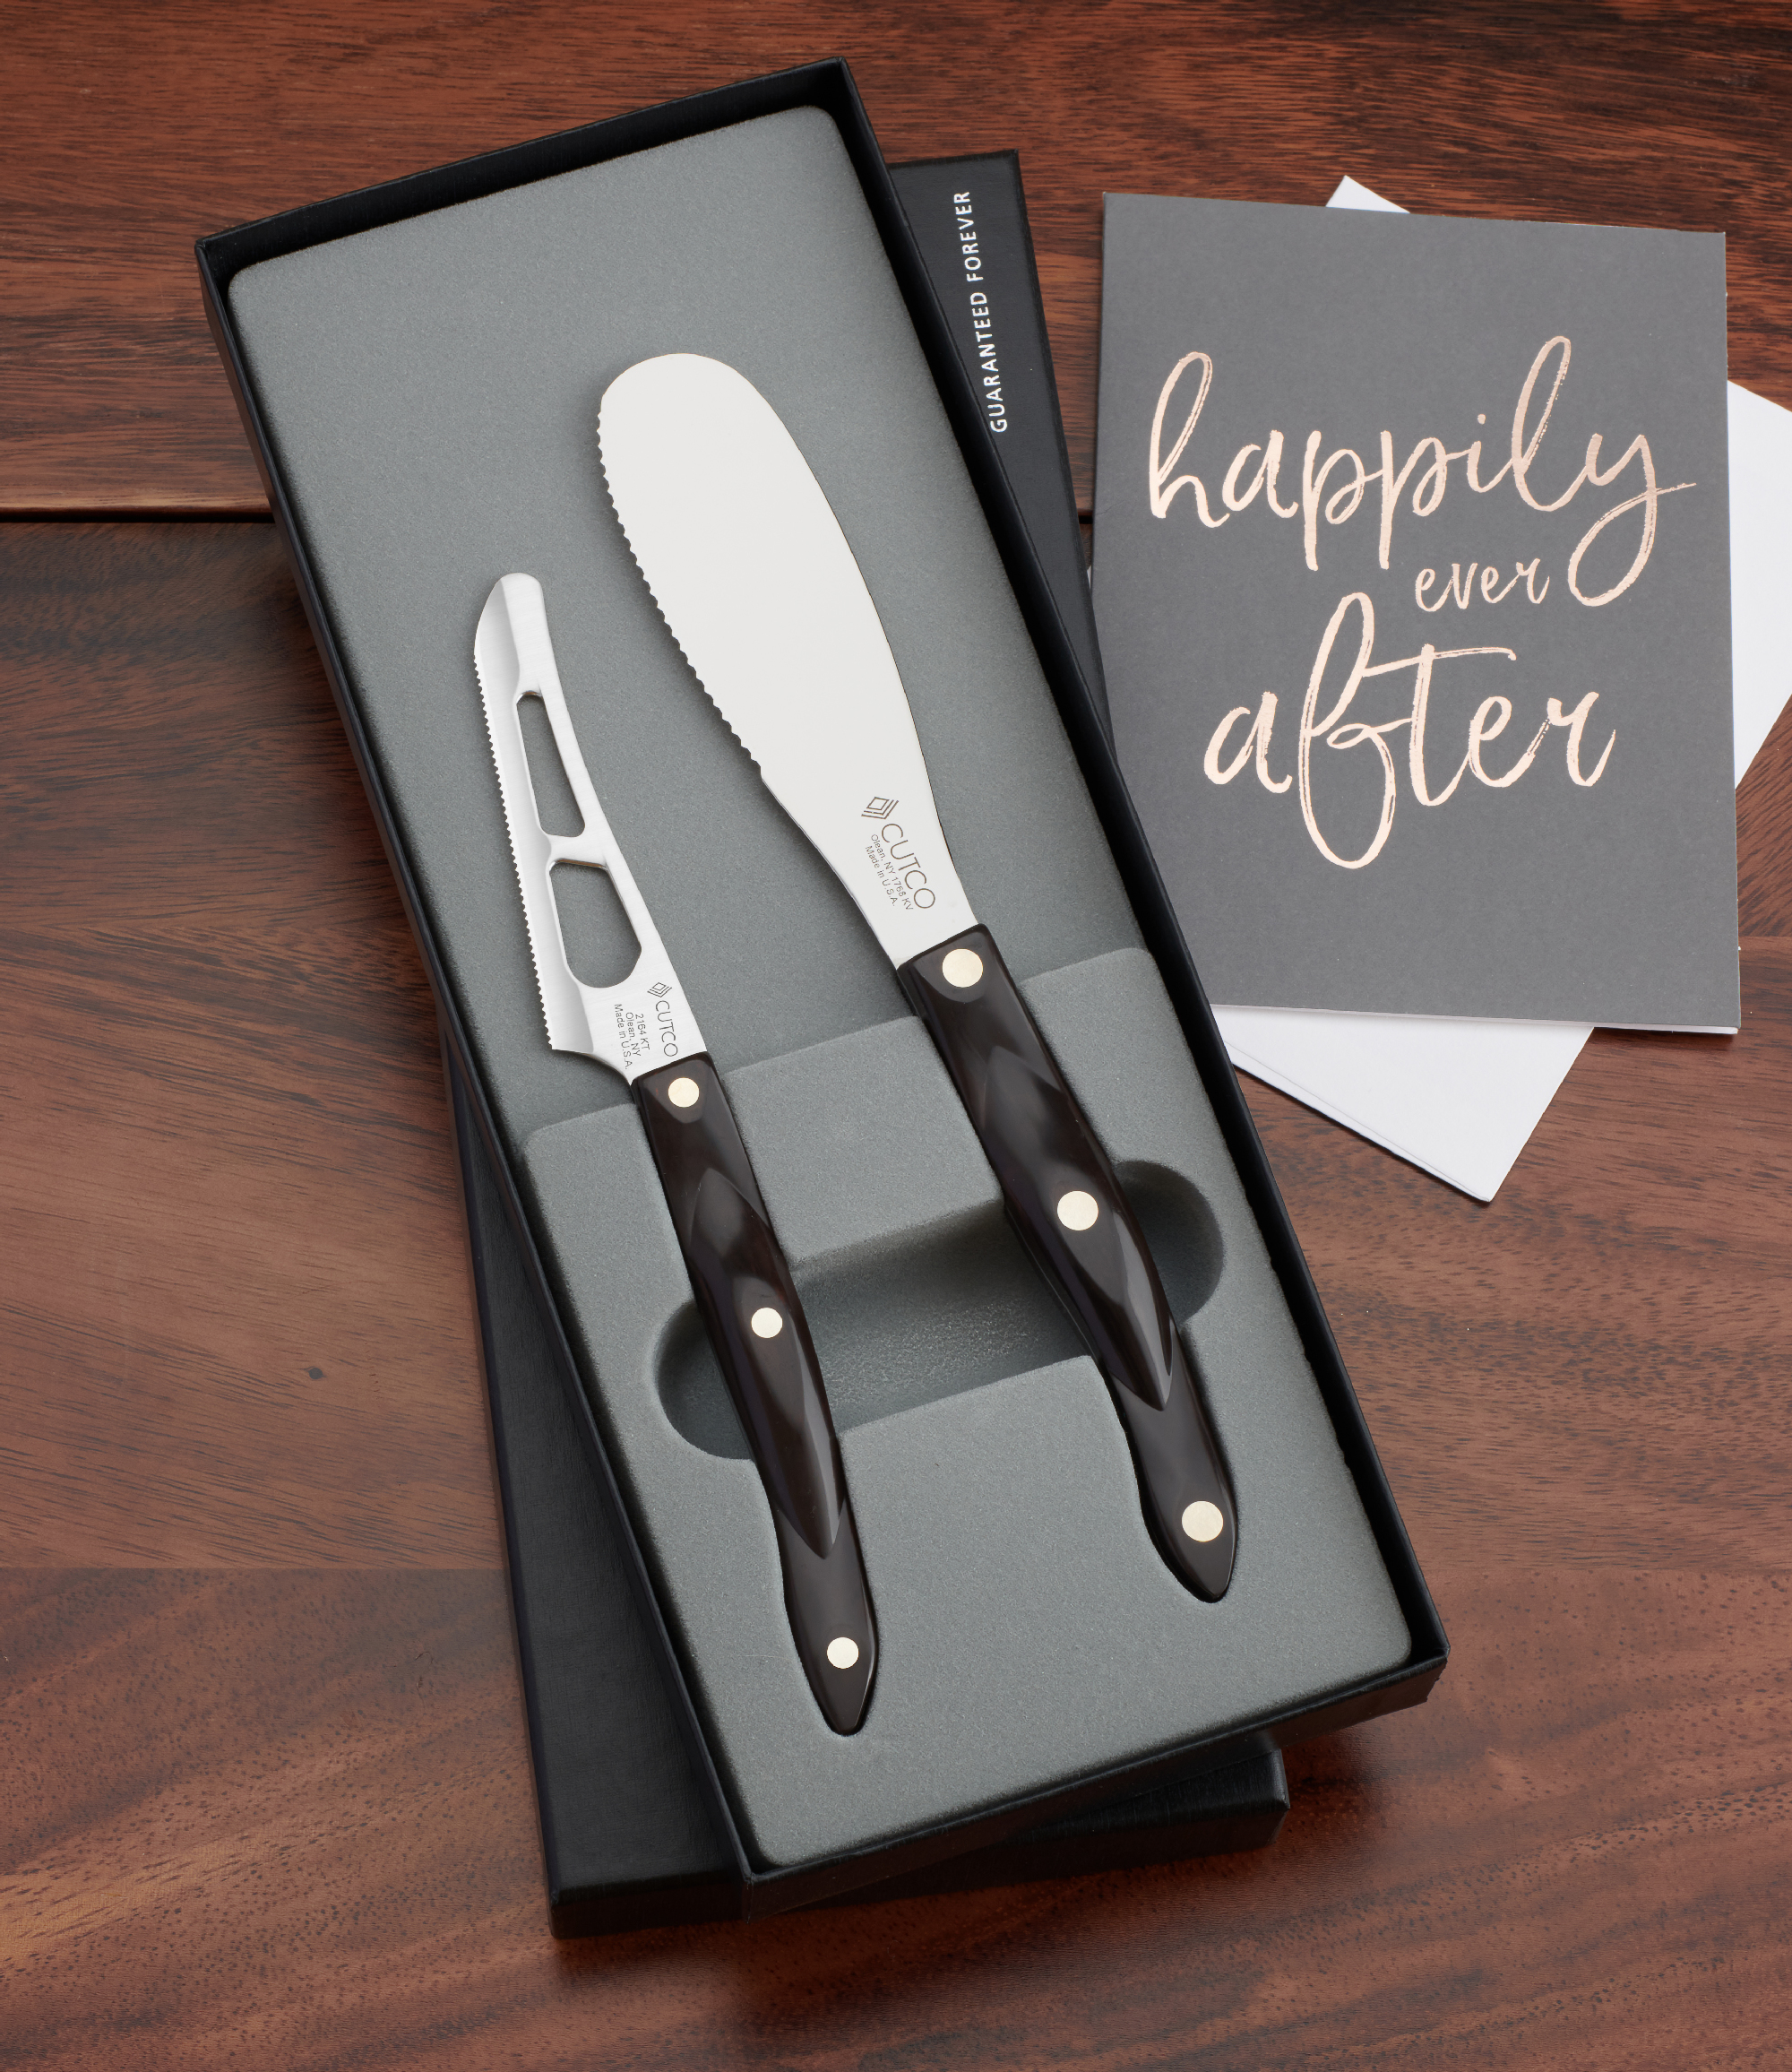 promotional gifts by cutco